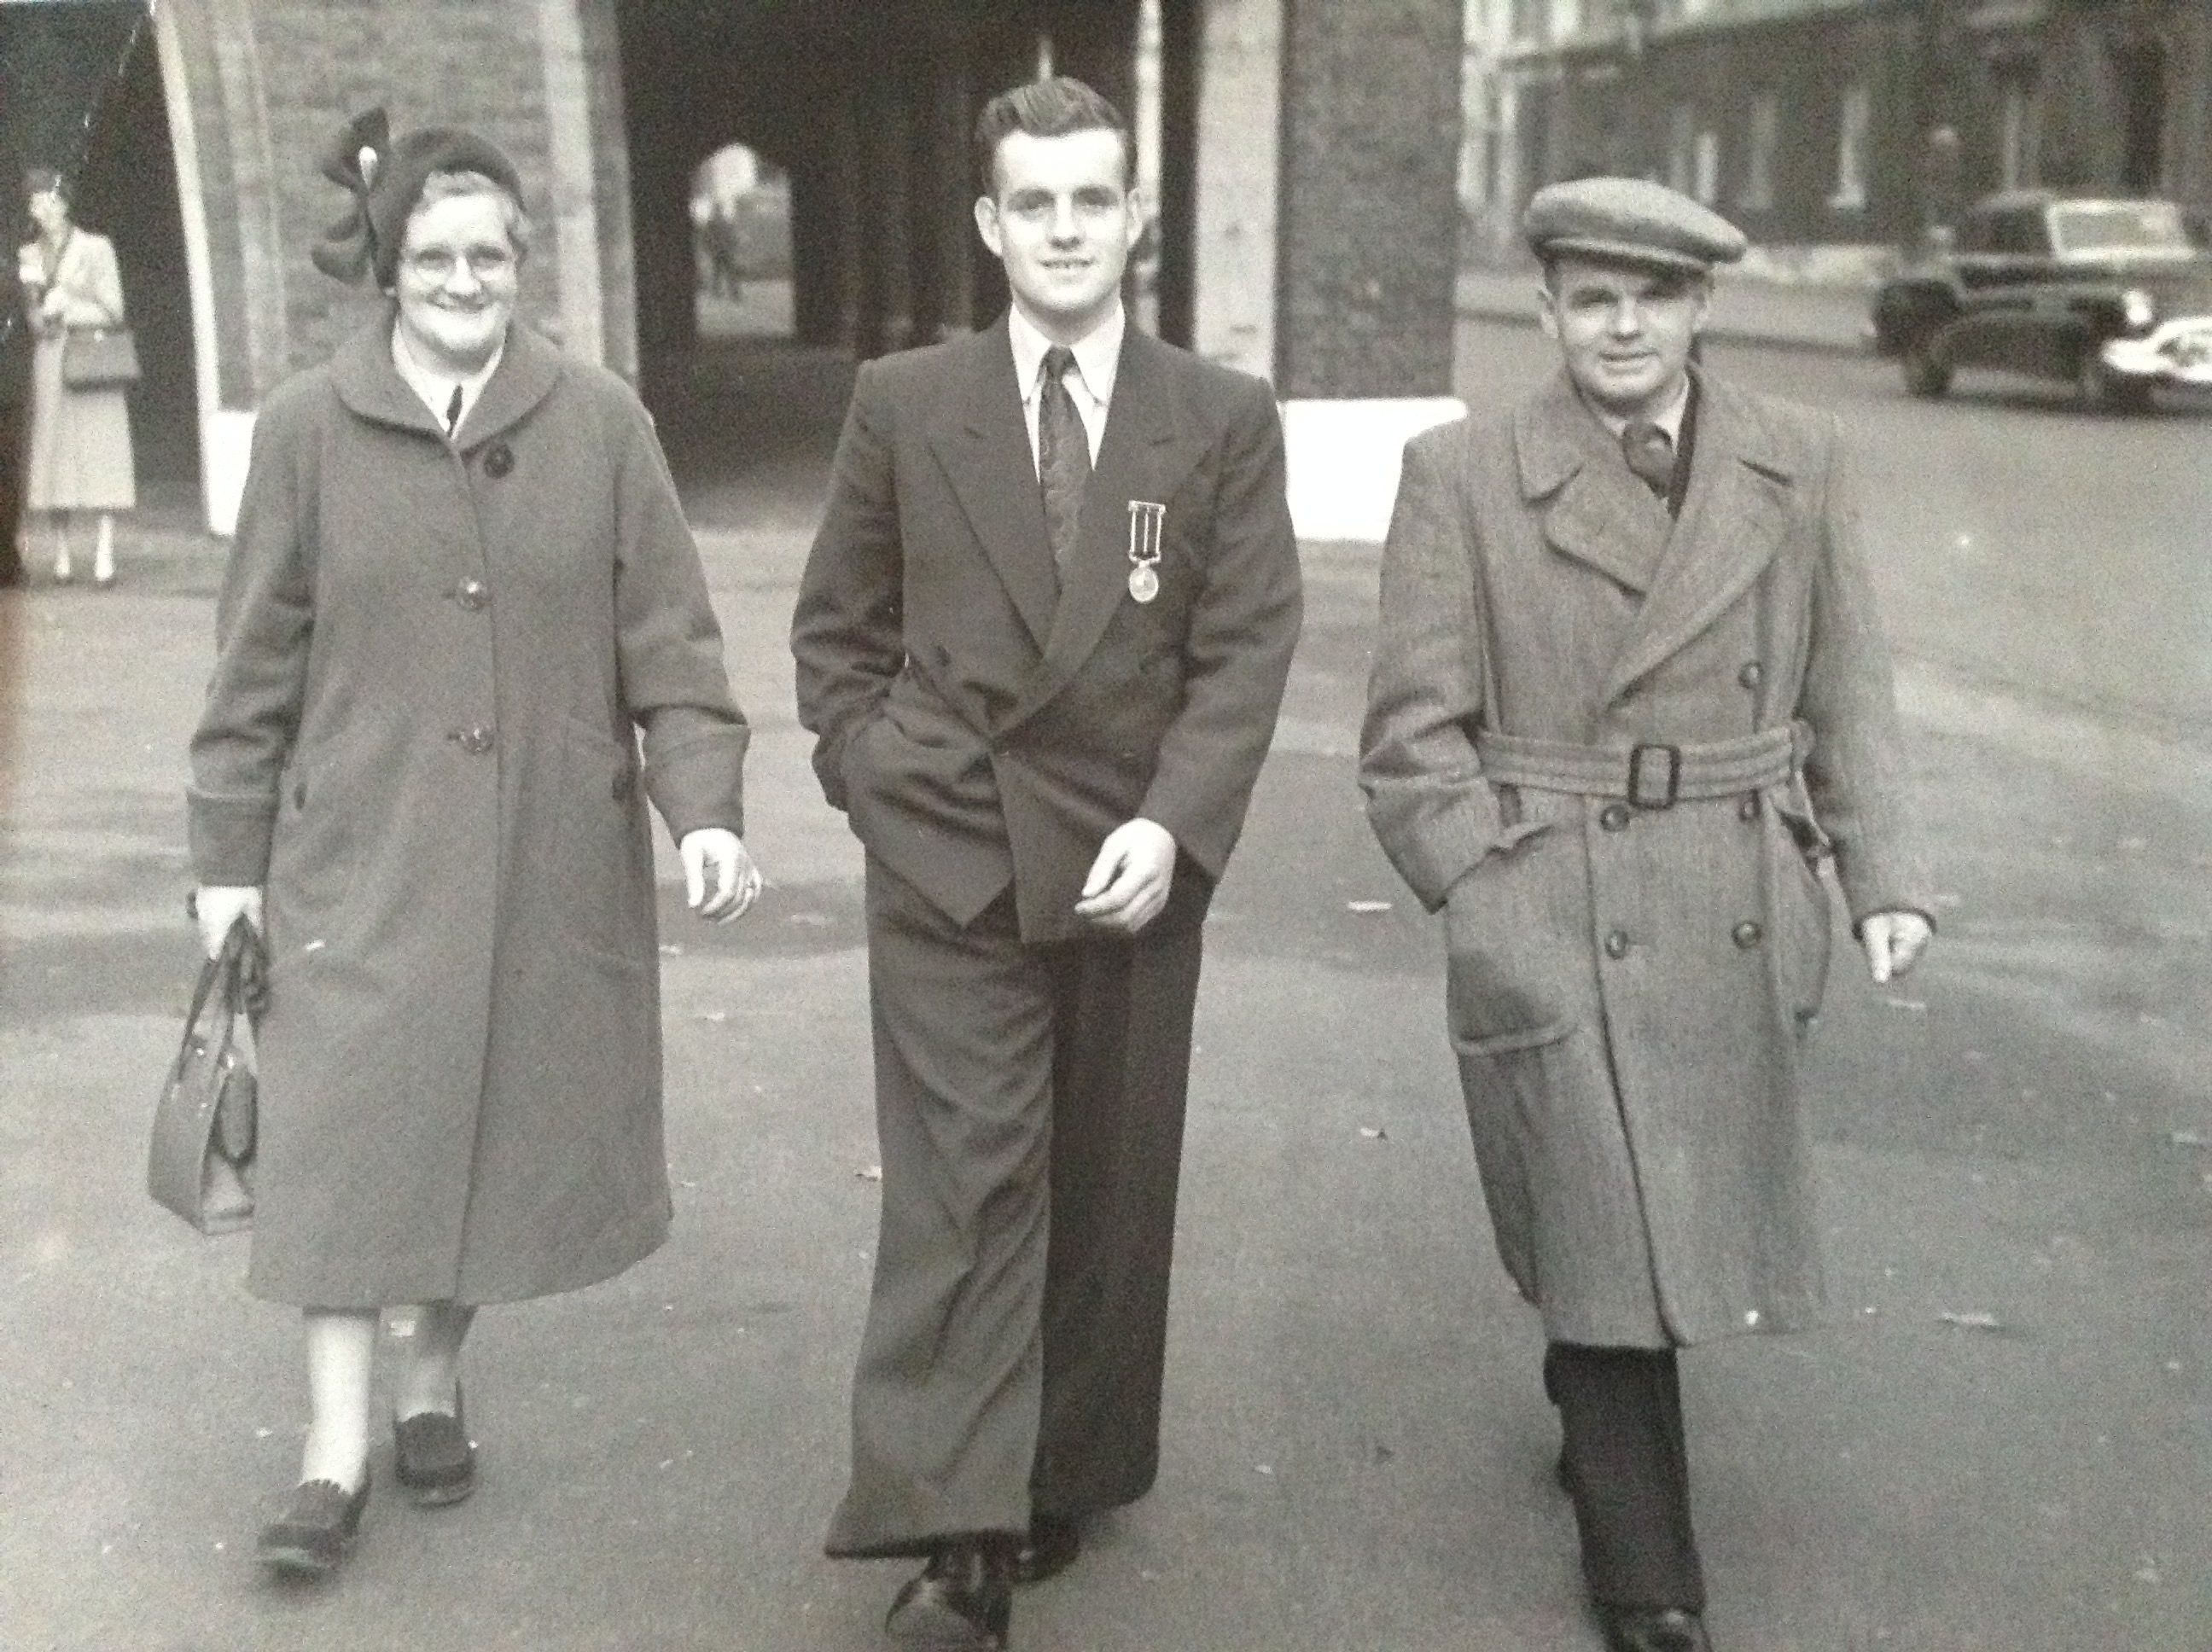 Peter Strachan with his parents John and Elsie Strachan by his side after he received the Stanhope Gold Medal in 1952